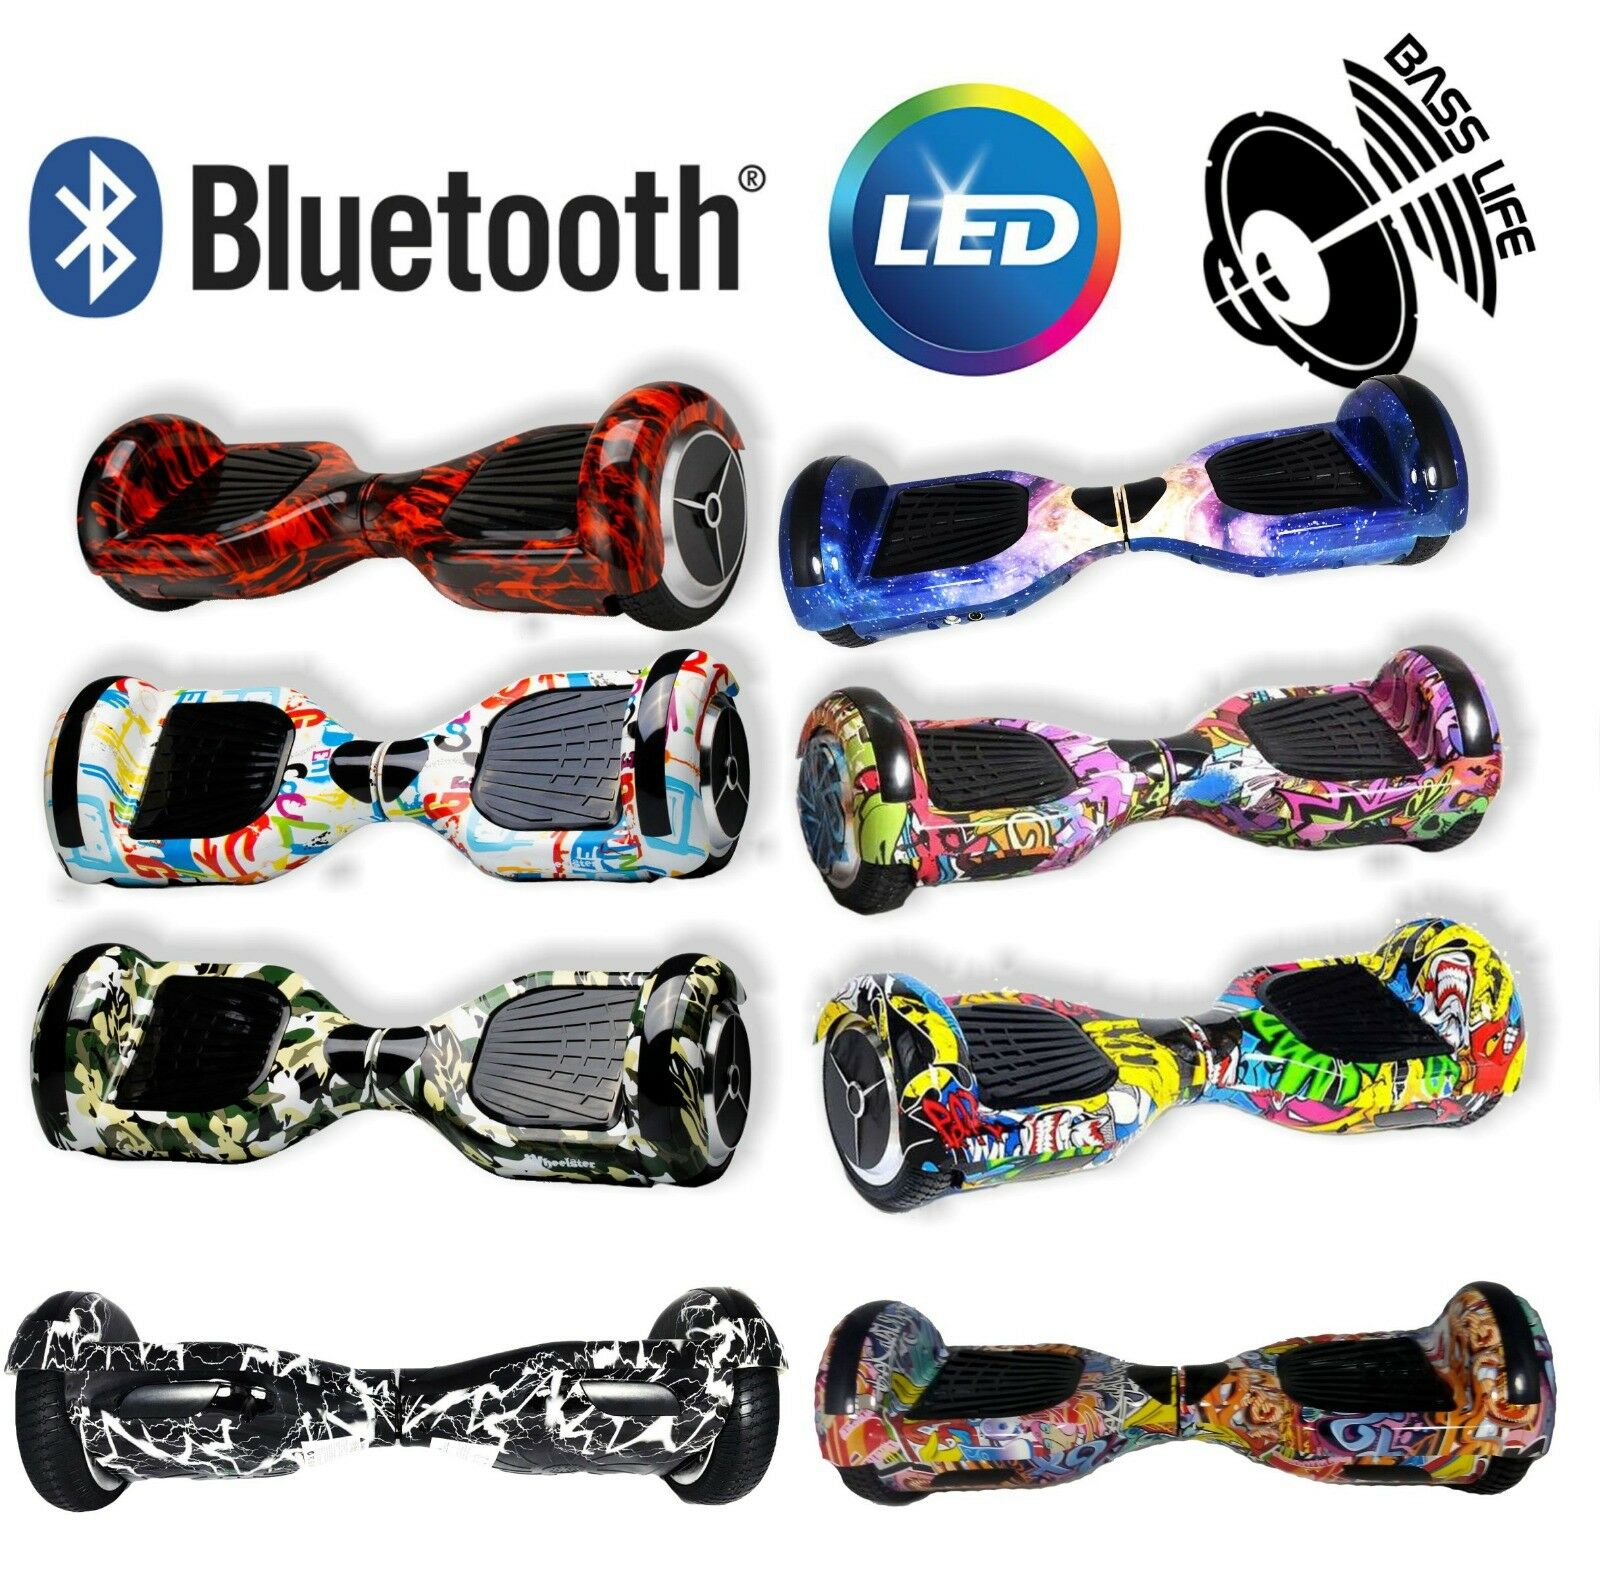 HOVERBOARD ELETTRICO 6,5 POLLICI bluTOOTH E LED SMART BALANCE OVERBOARD